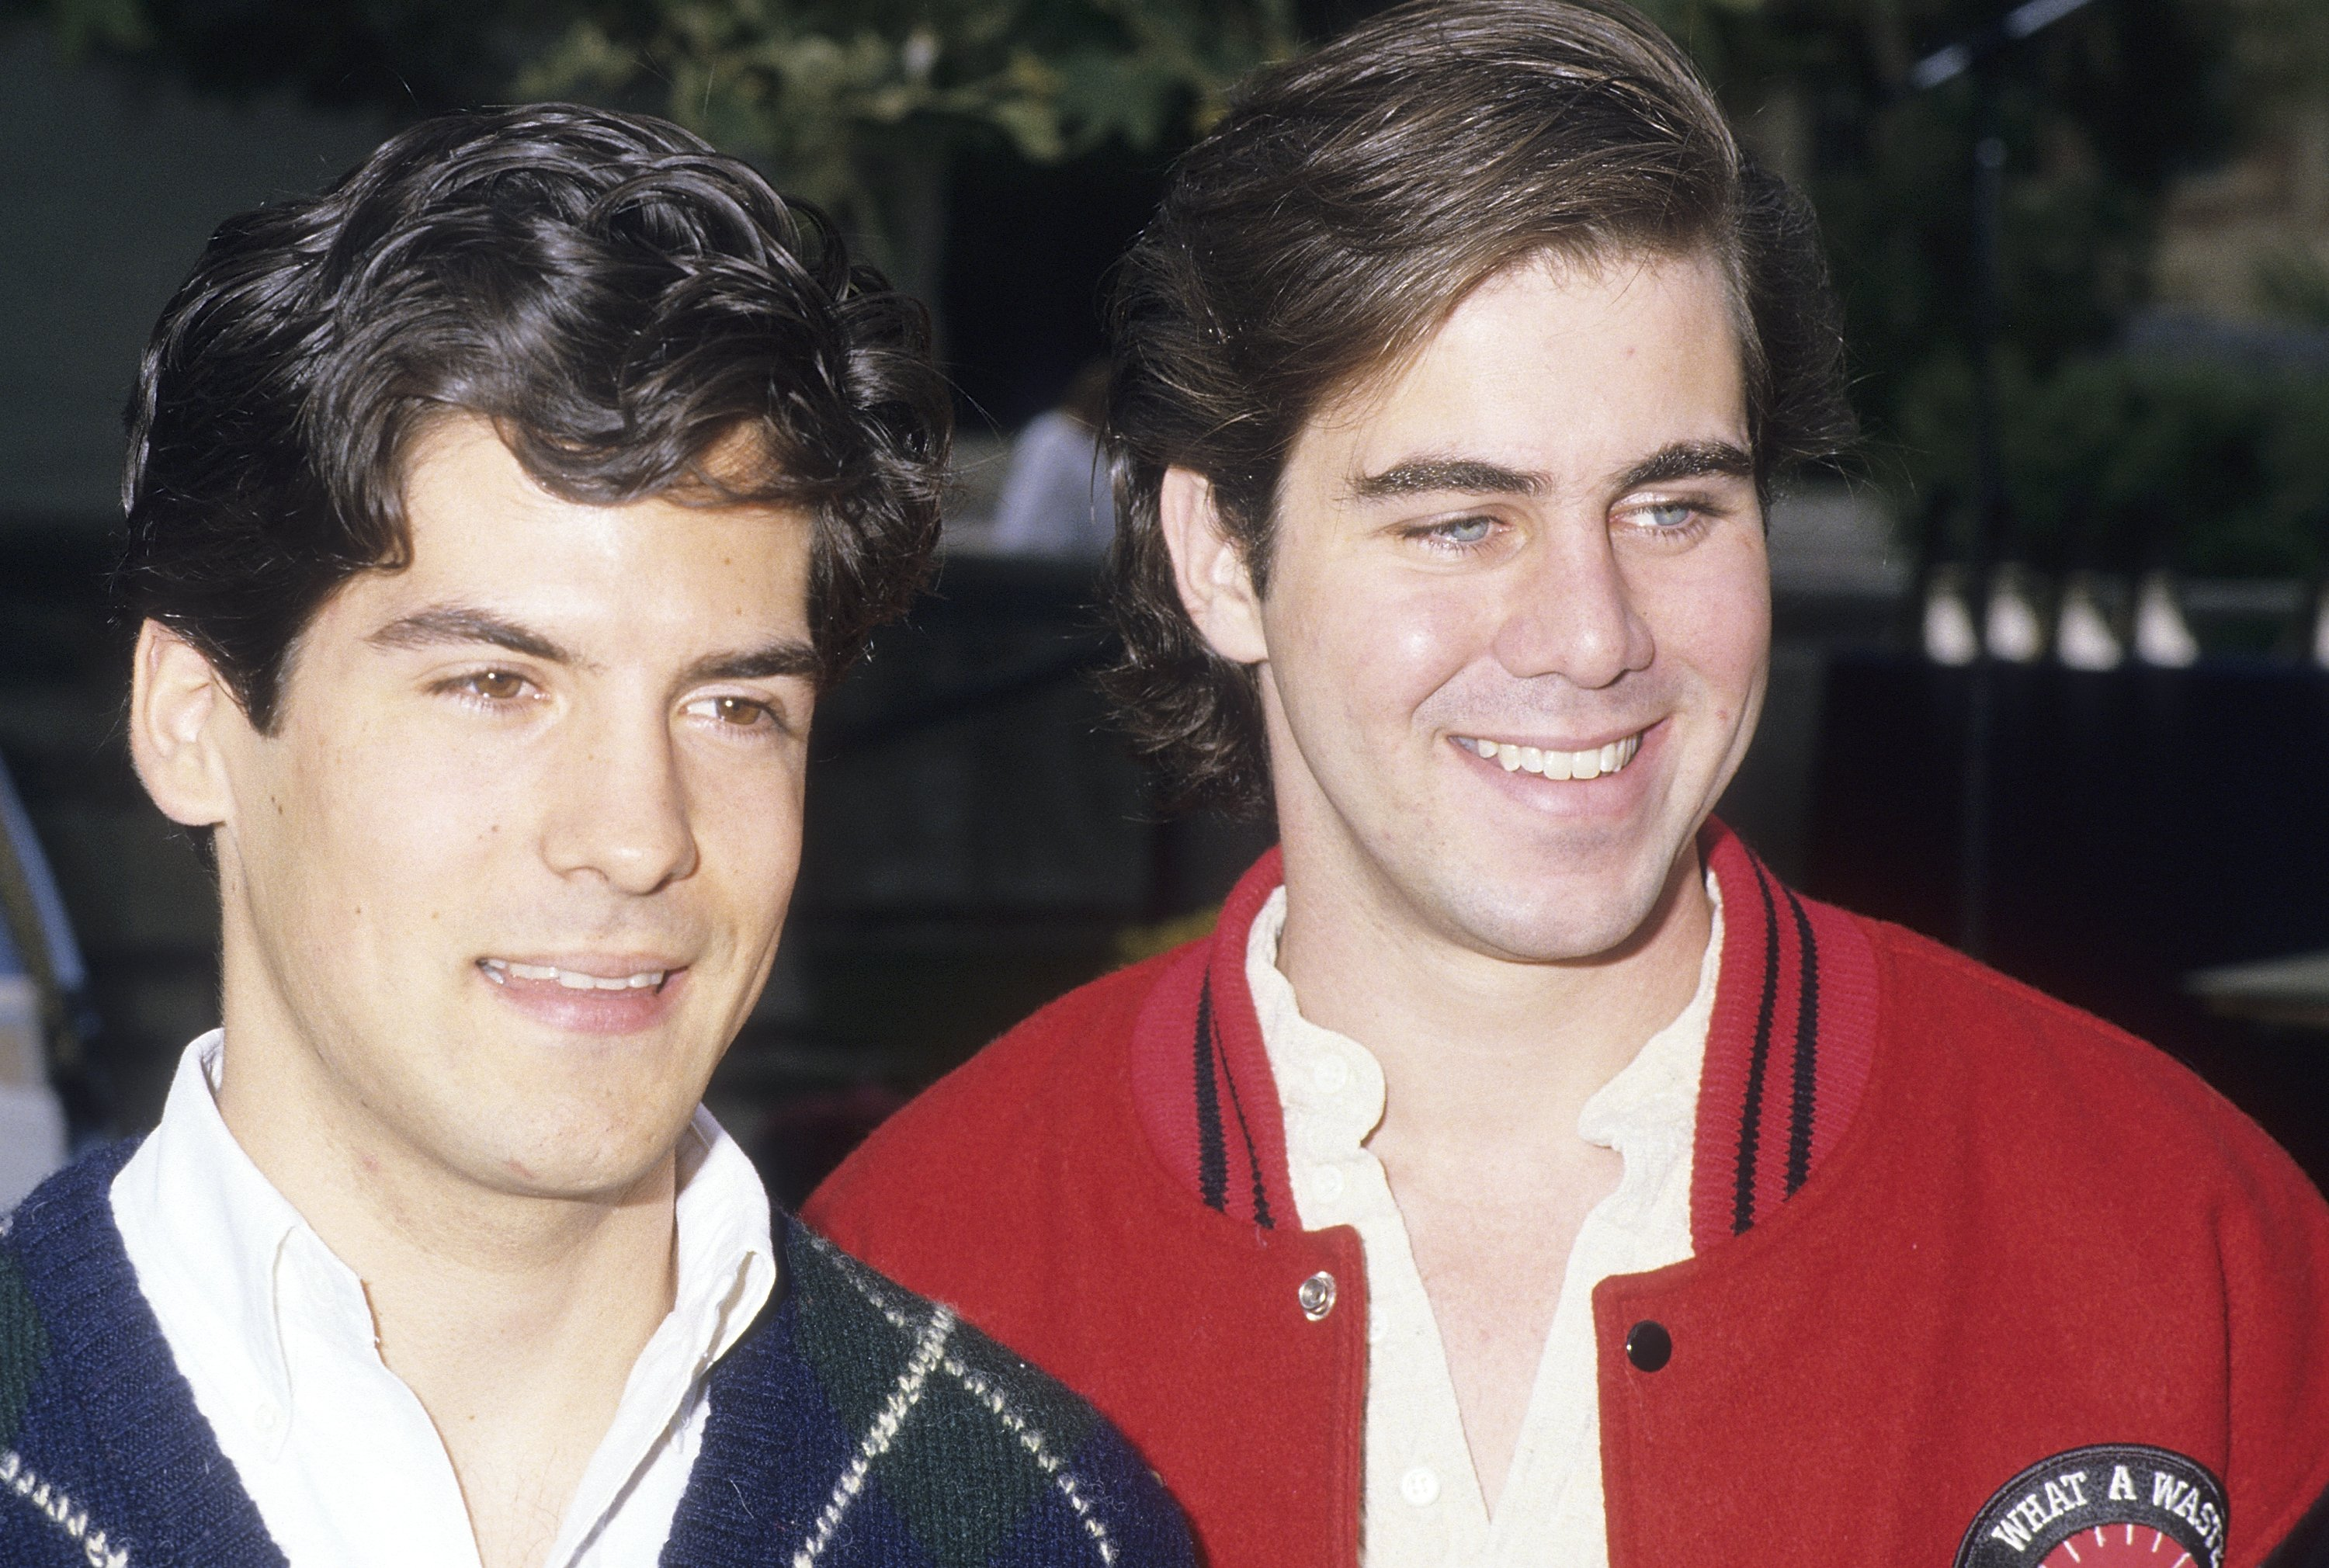 Actor Matthew Laborteaux and brother actor Patrick Labyorteaux attend the 19th Annual California Special Olympics Summer Games Opening Night Ceremonies on June 17, 1988 | Source: Getty Images